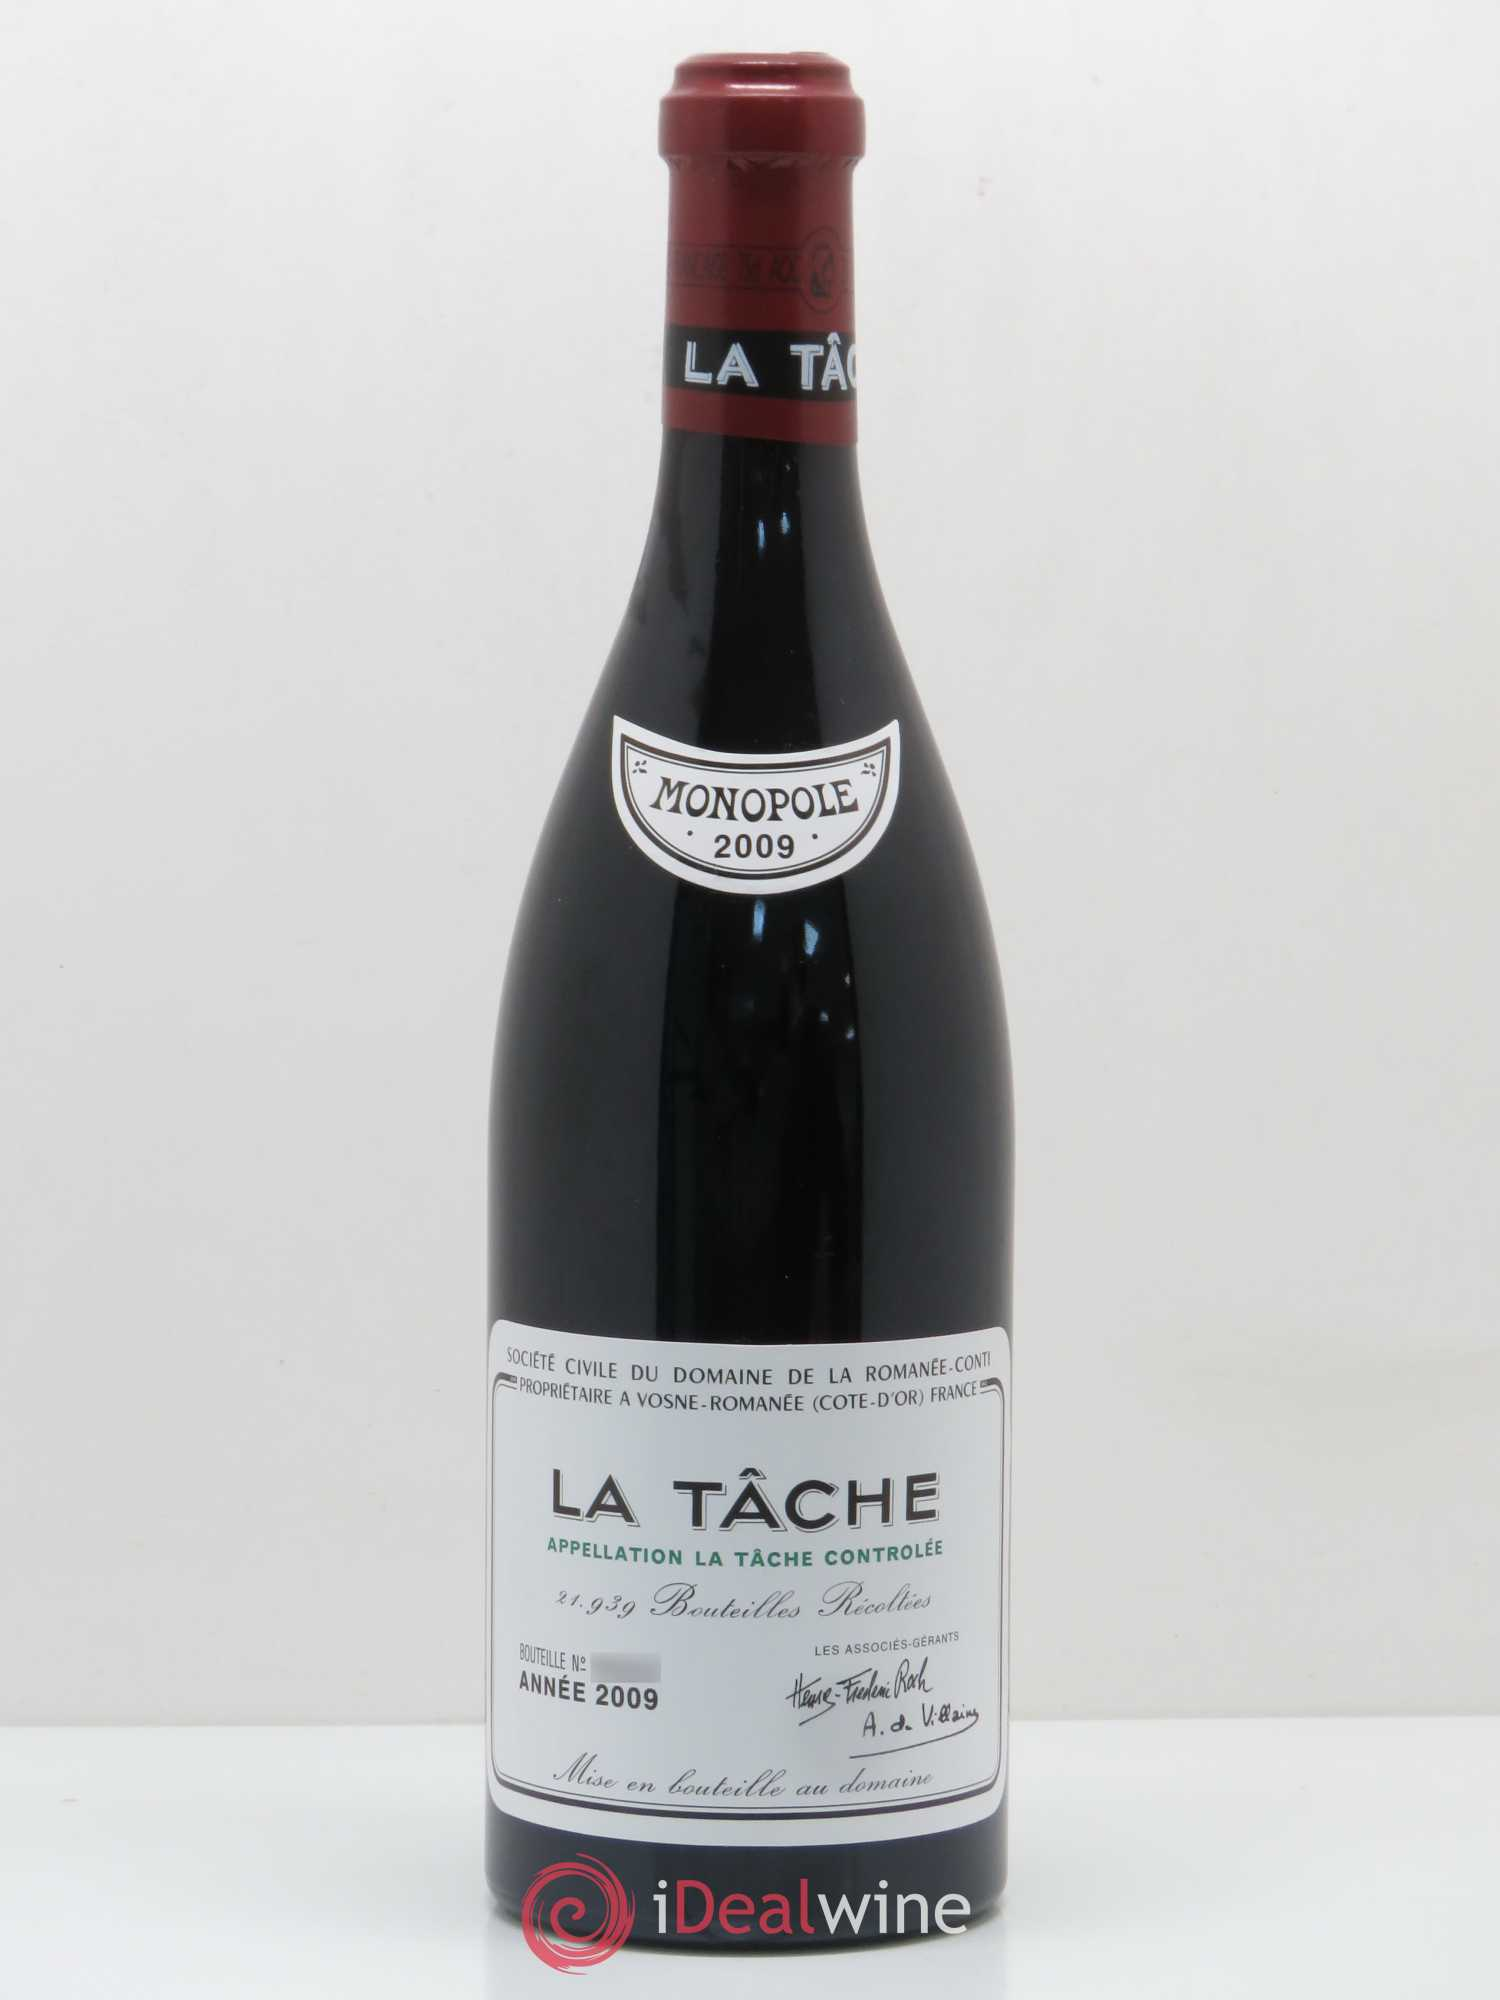 La Tâche Grand Cru Domaine de la Romanée-Conti  2009 - Lot of 1 Bottle